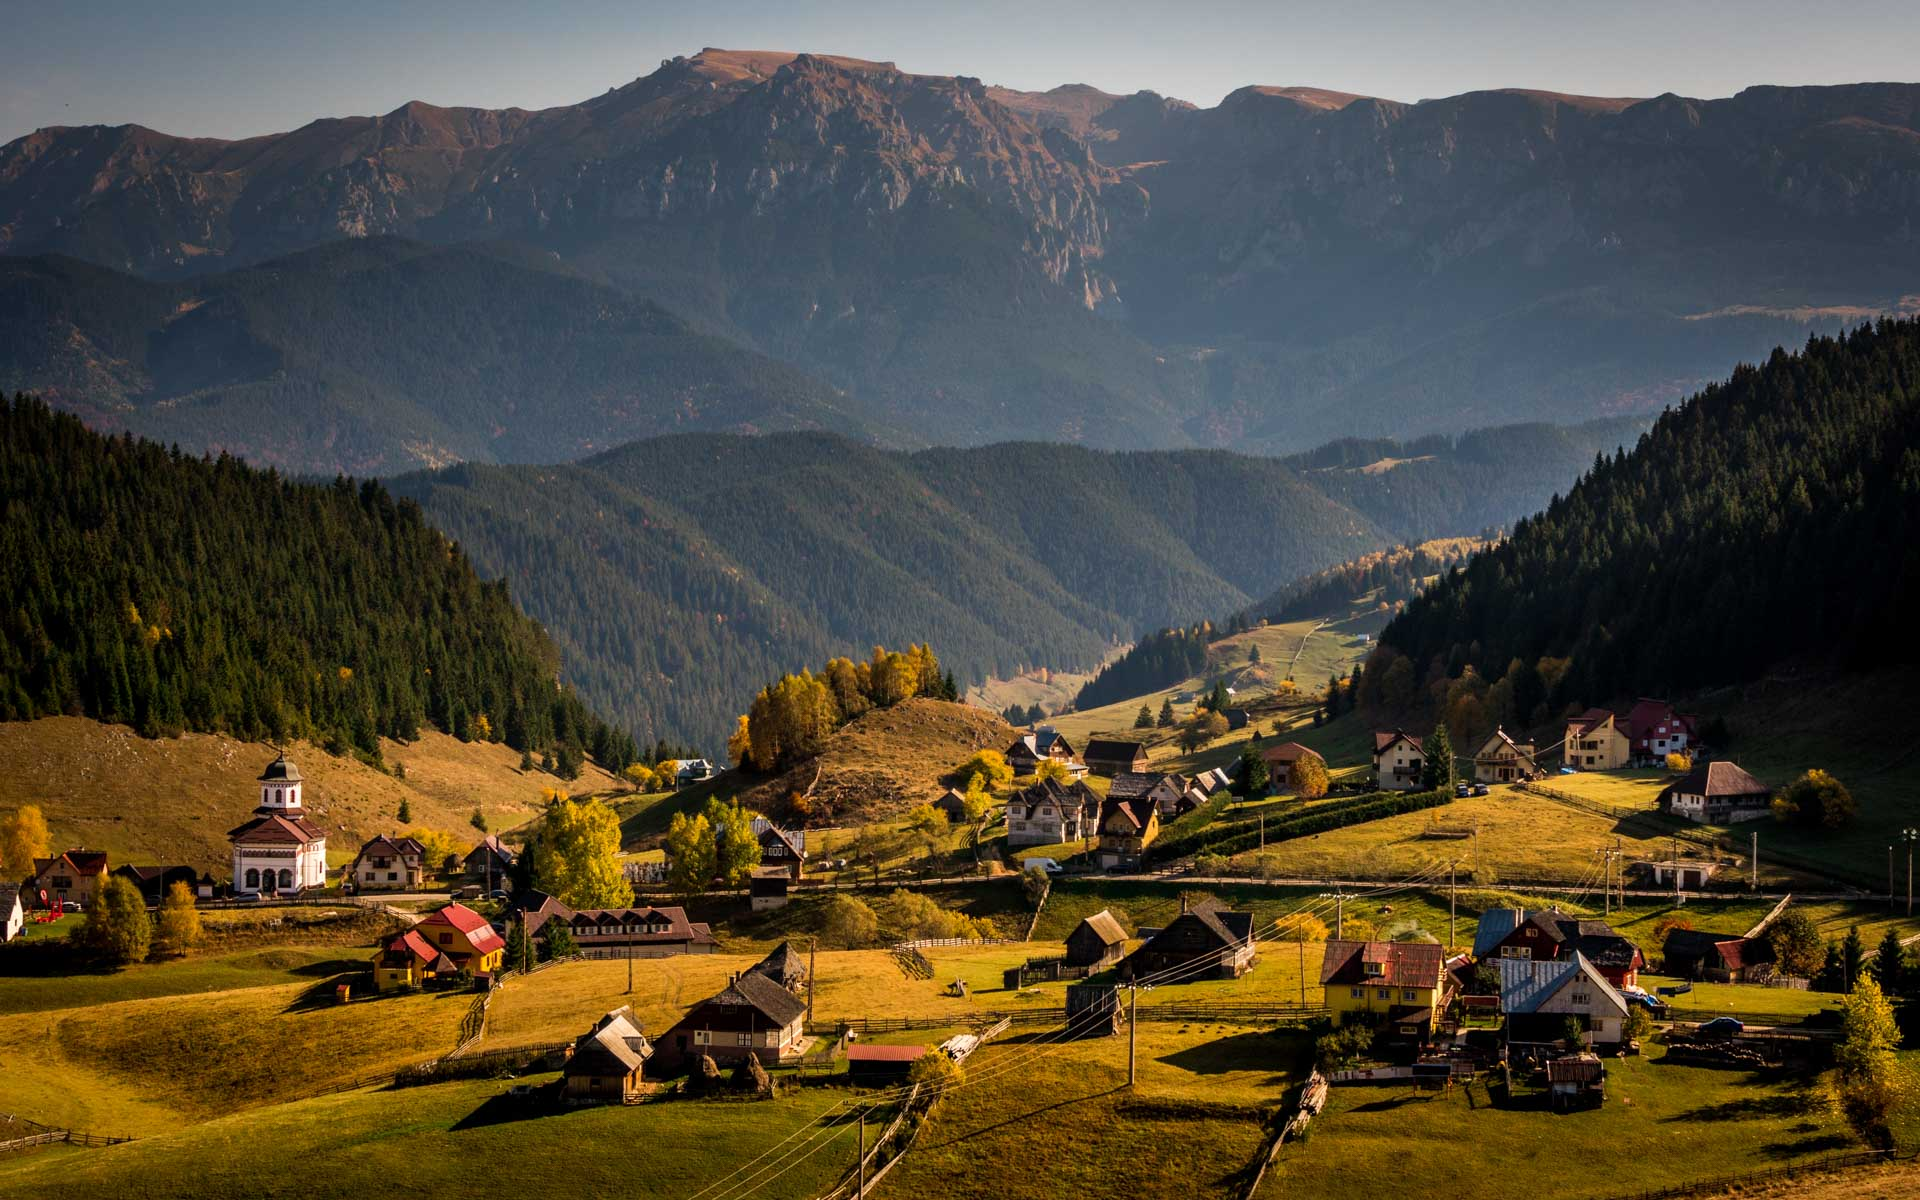 Village in Transylvania region